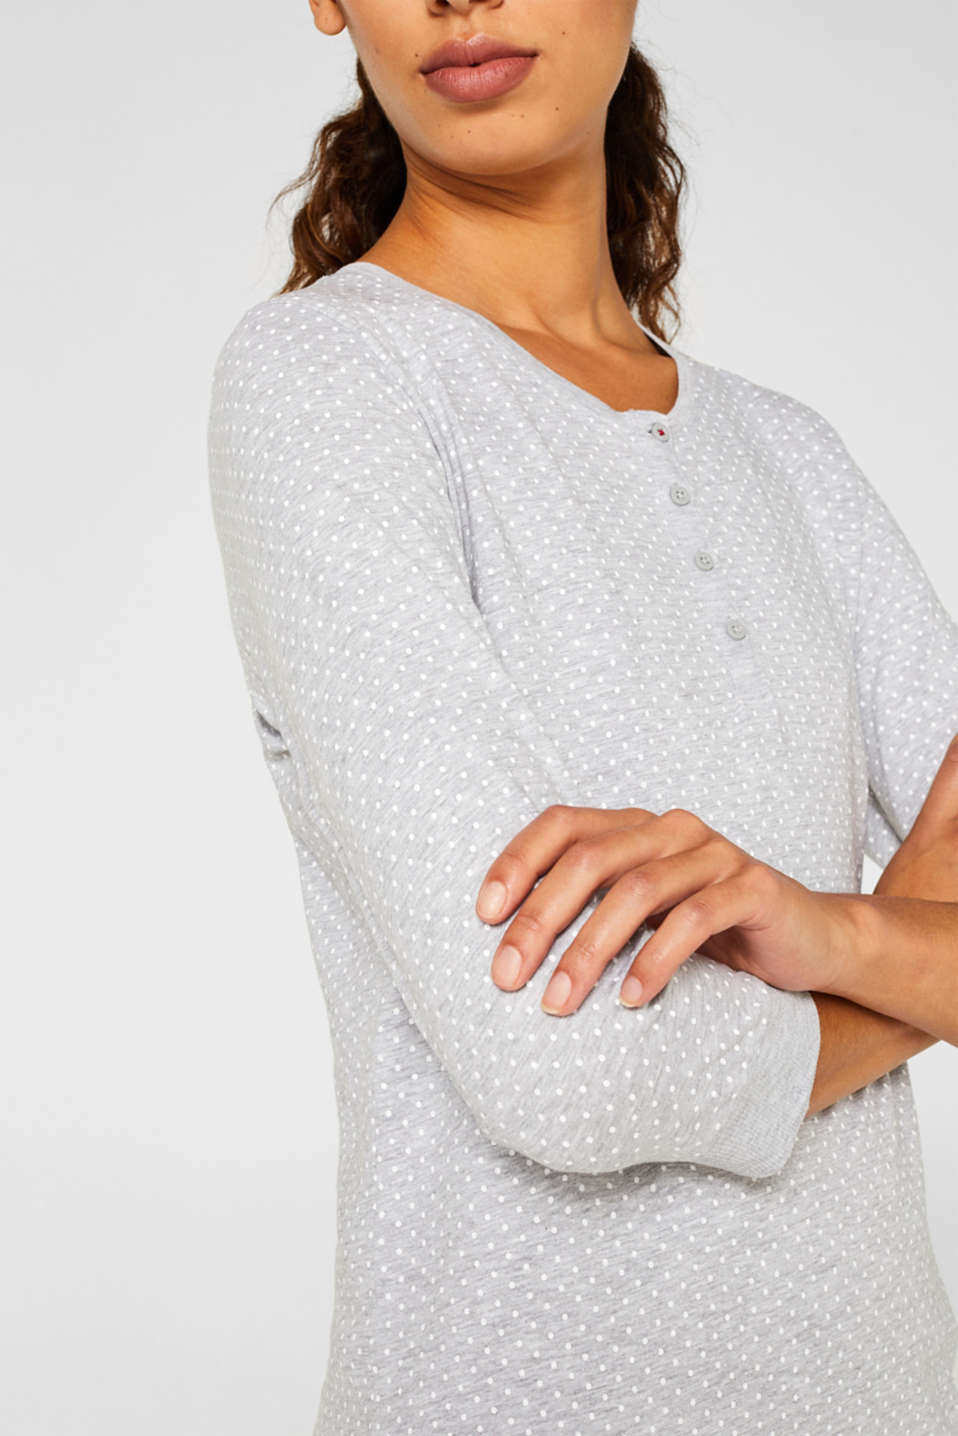 MODERN COTTON nightshirt, LIGHT GREY, detail image number 5